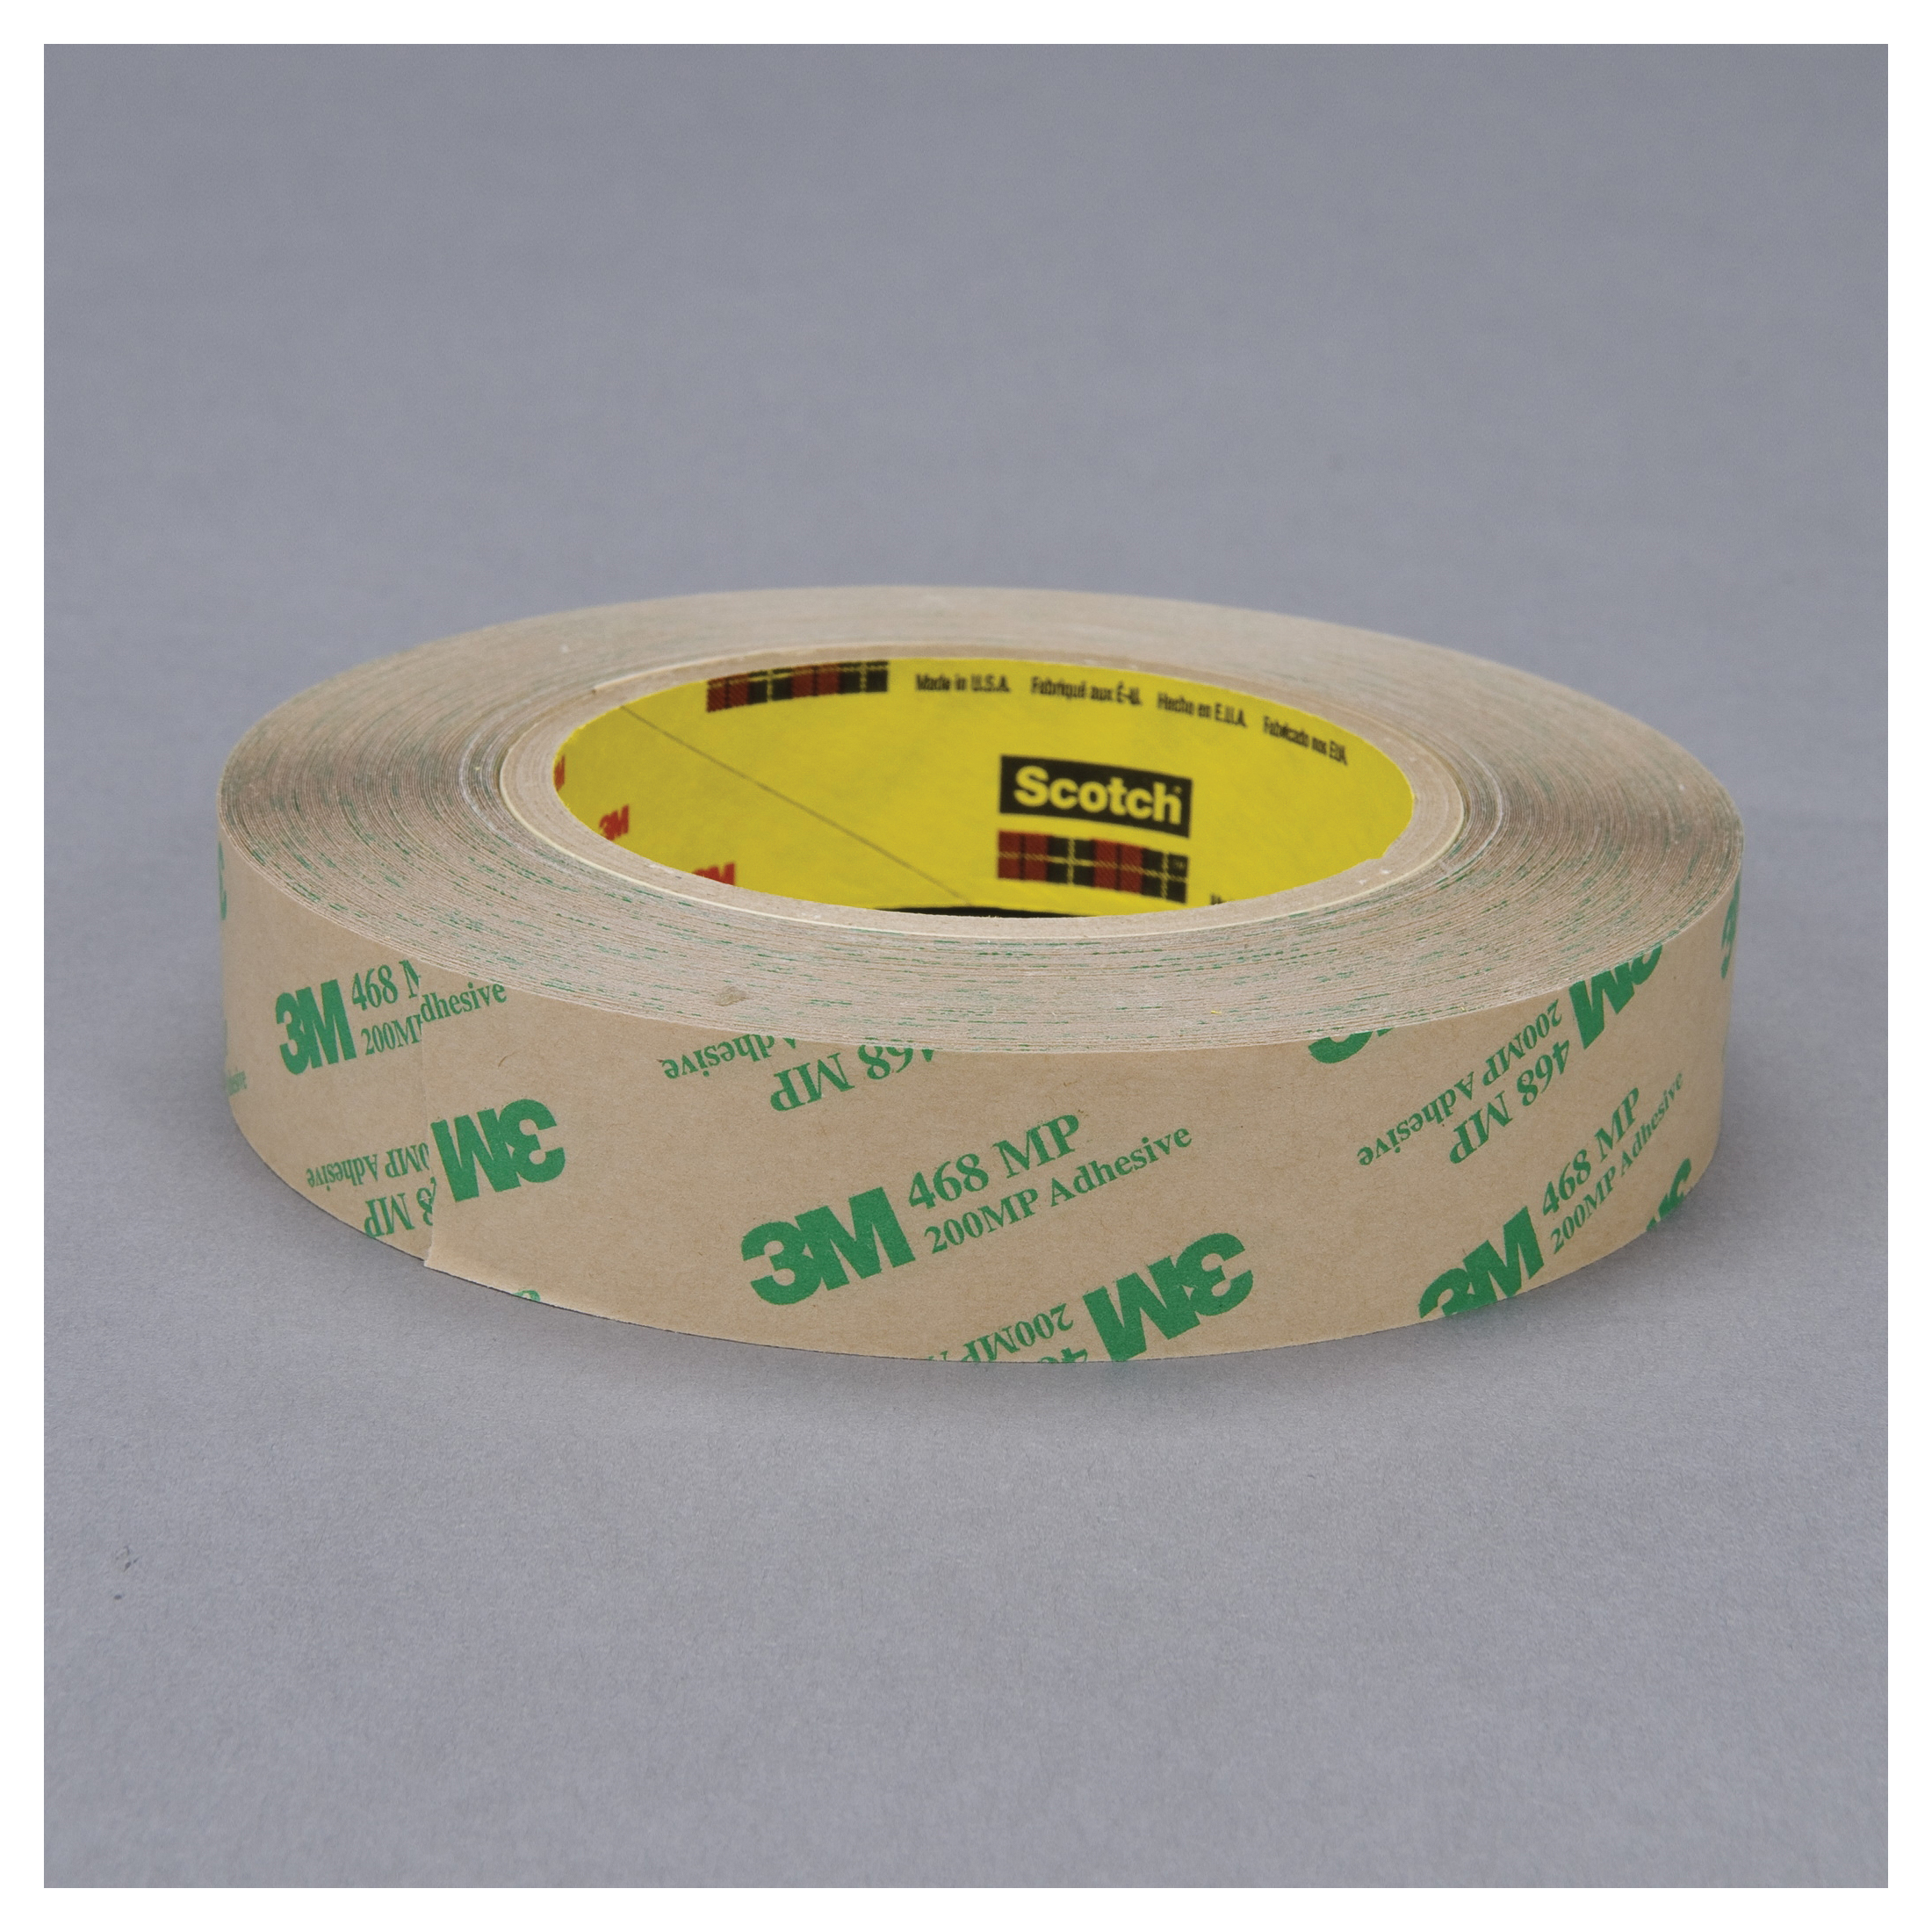 3M™ 021200-19337 High Performance Medium Tack Adhesive Transfer Tape, 60 yd L x 1 in W, 9.2 mil THK, 5 mil 200MP Acrylic Adhesive, Clear